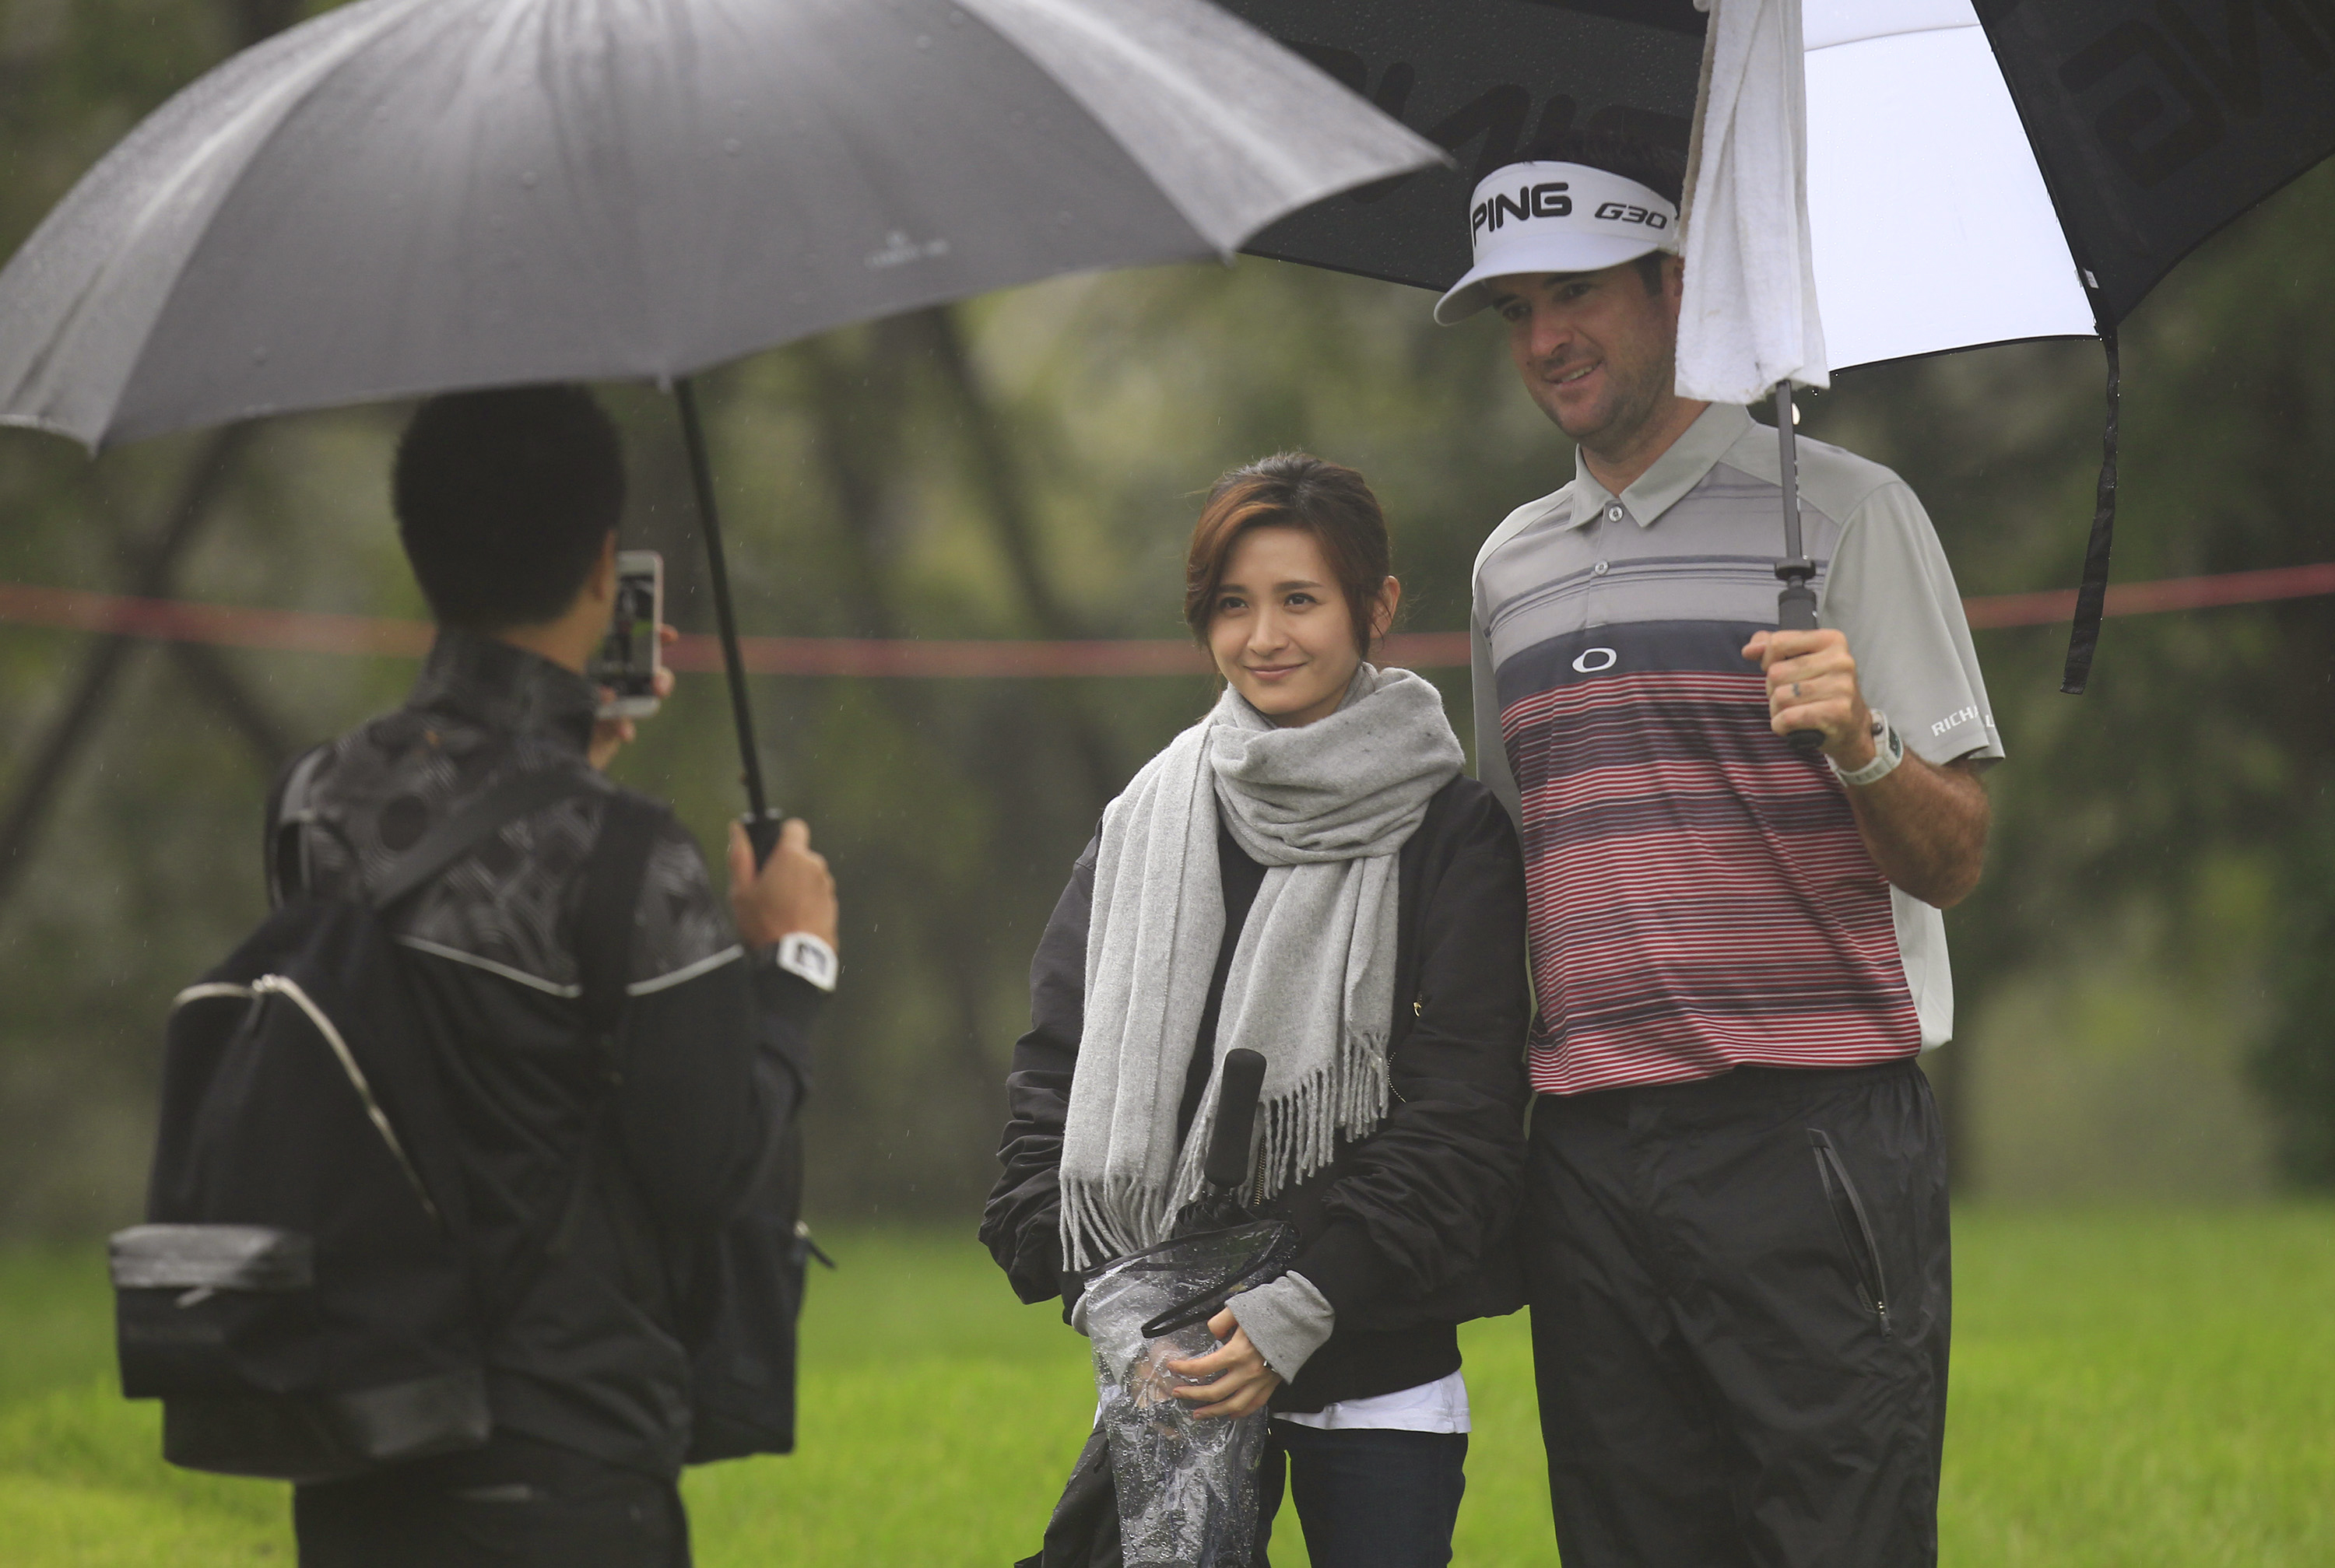 Bubba Watson poses for a photo with a spectator during the SBC Champions Pro-Am.